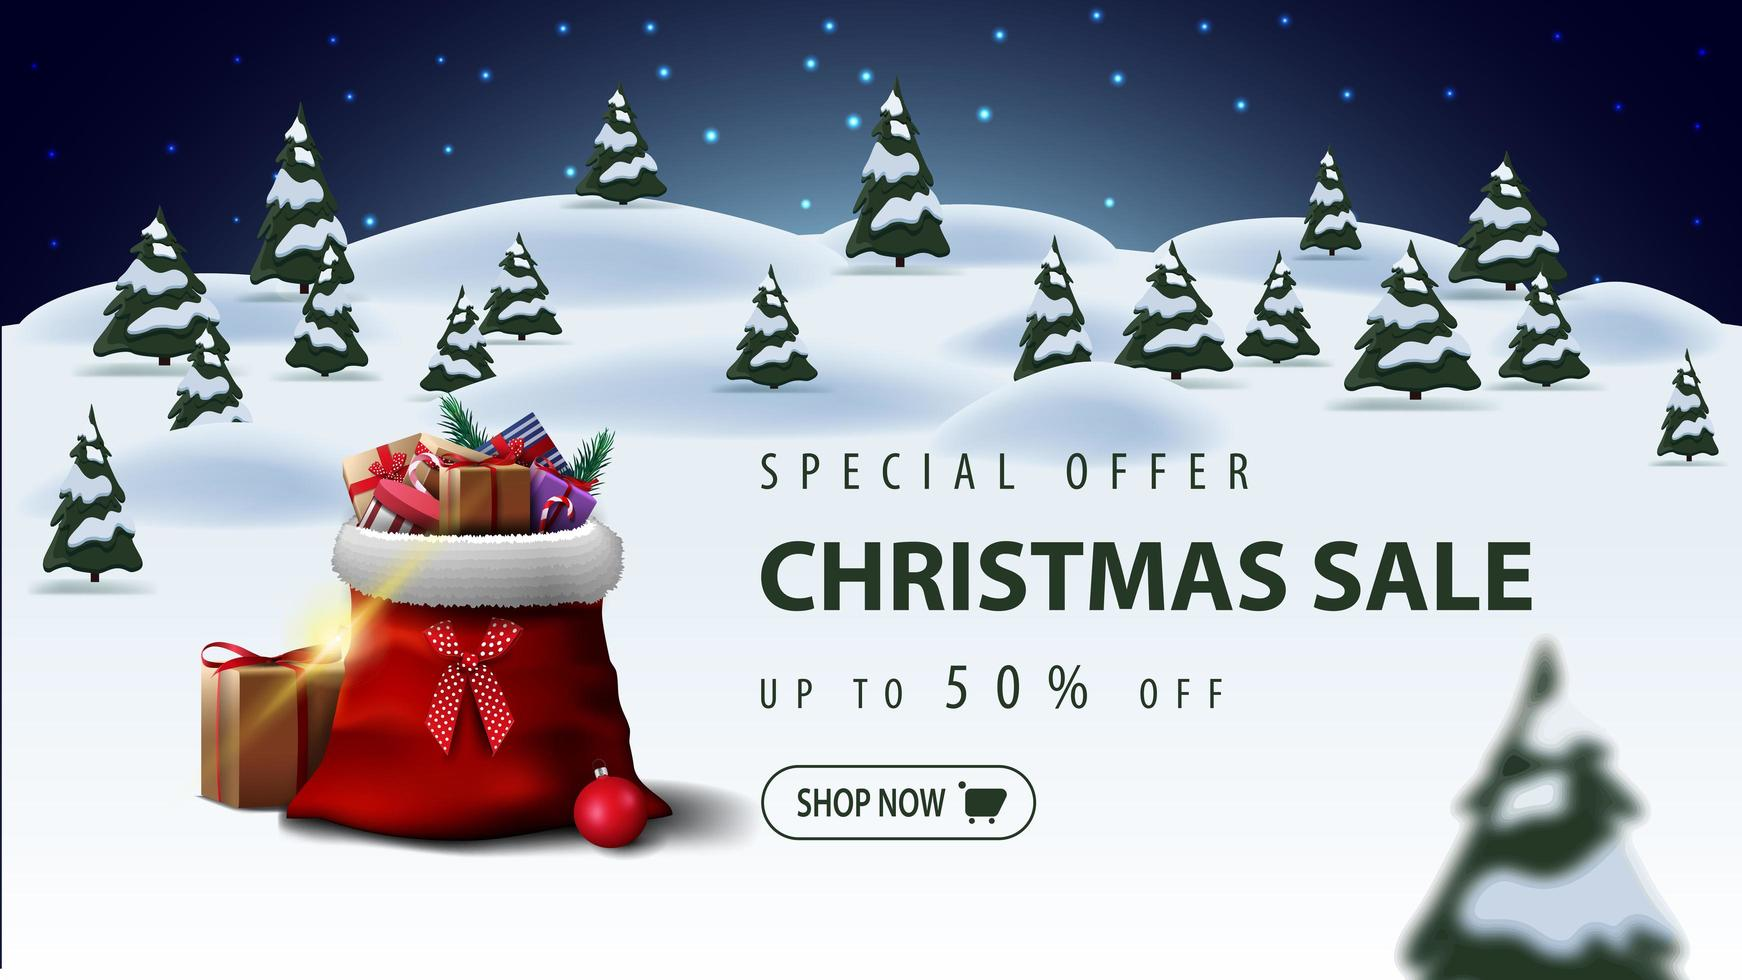 Special offer, Christmas sale, up to 50 off, beautiful discount banner with Santa Claus bag with presents and cartoon winter landscape on background vector